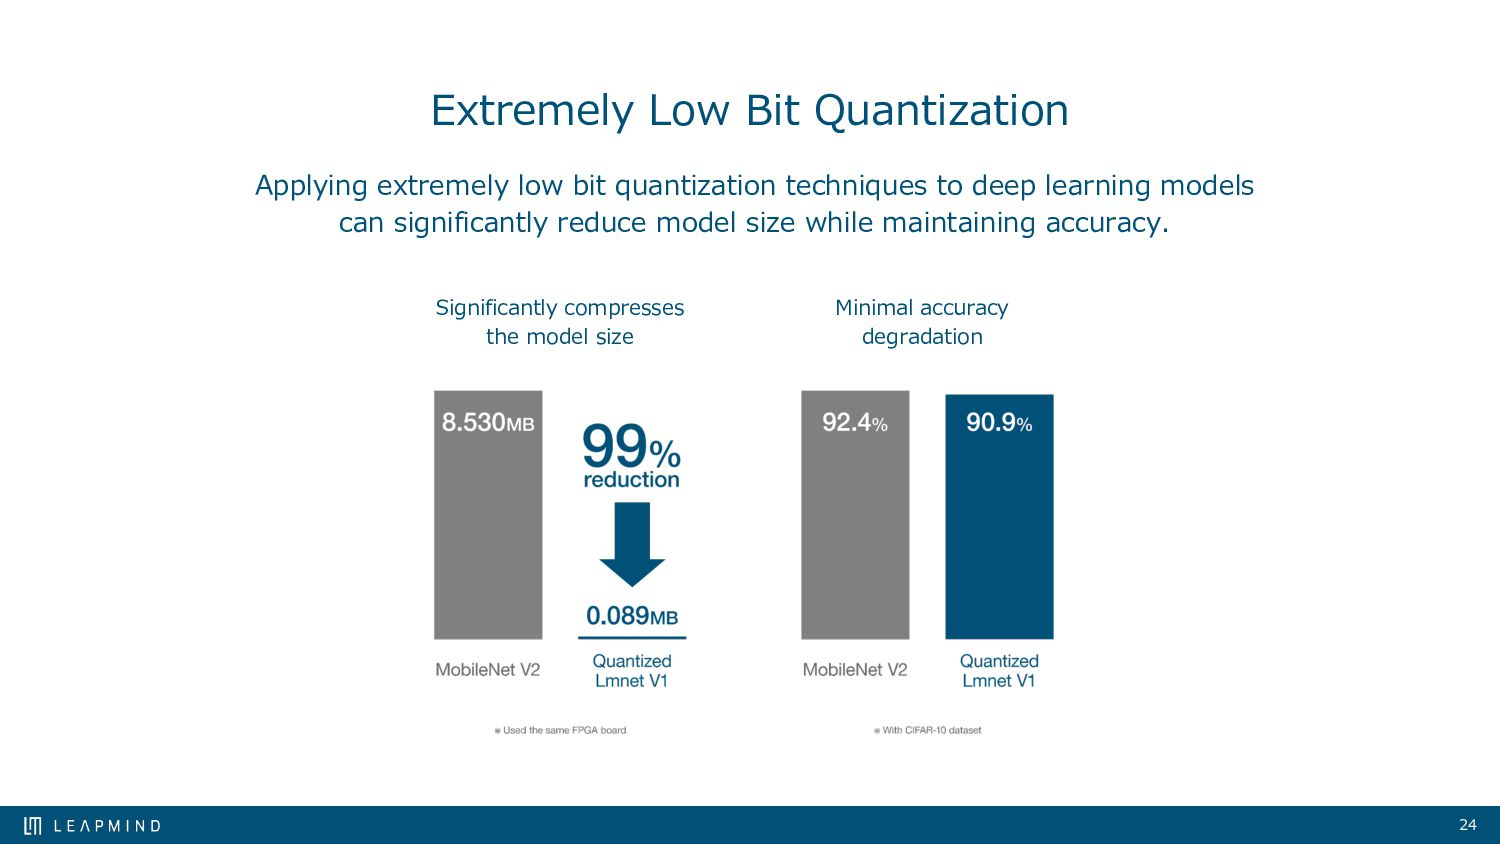 24 Extremely Low Bit Quantization Applying extr...